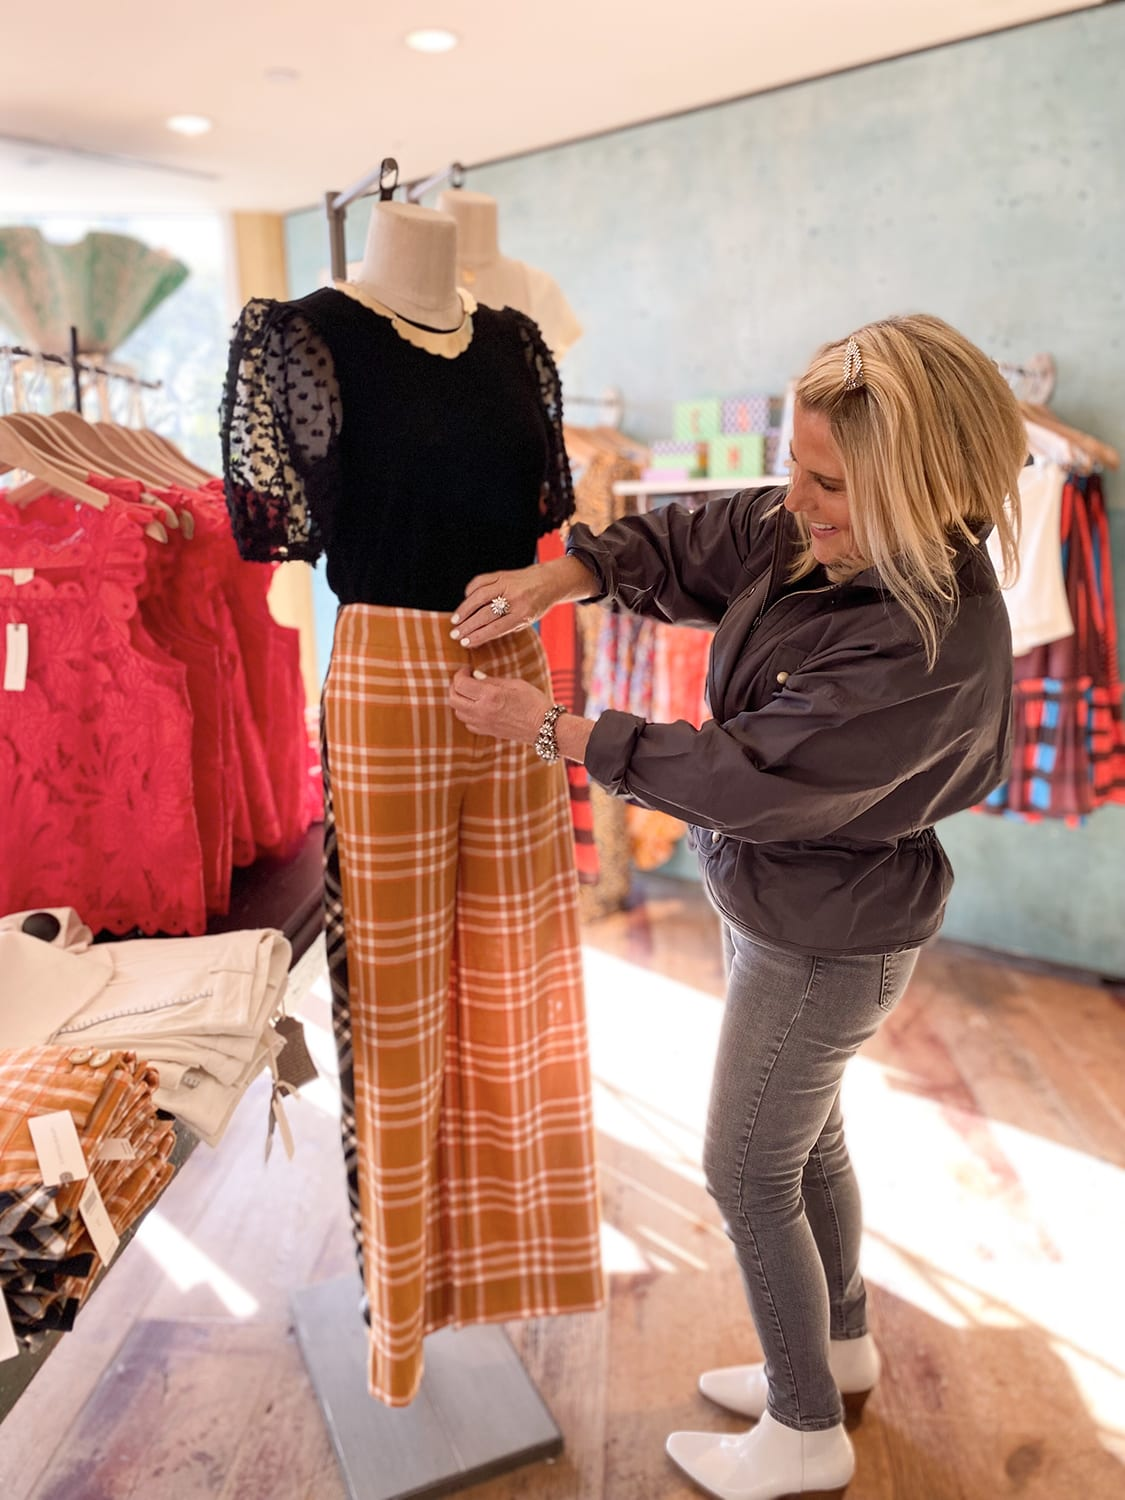 Kelly working at Anthropologie